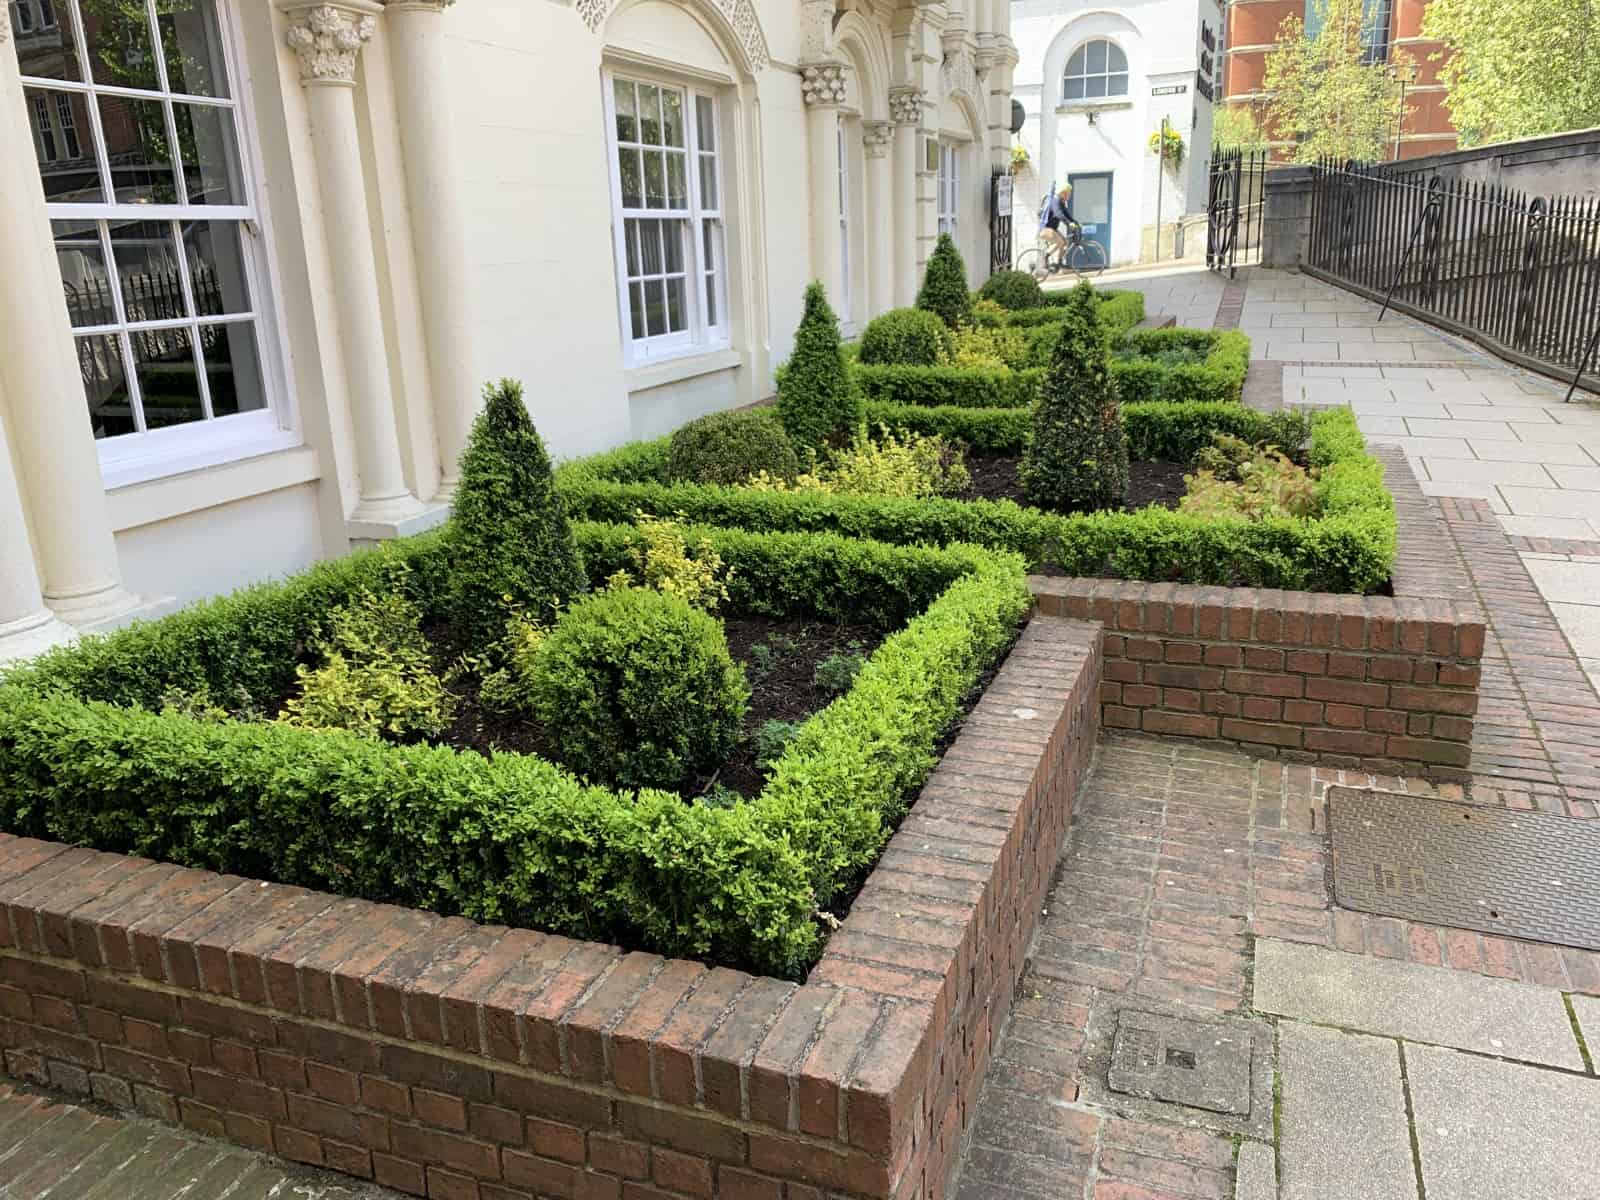 Commercial - garden maintenance